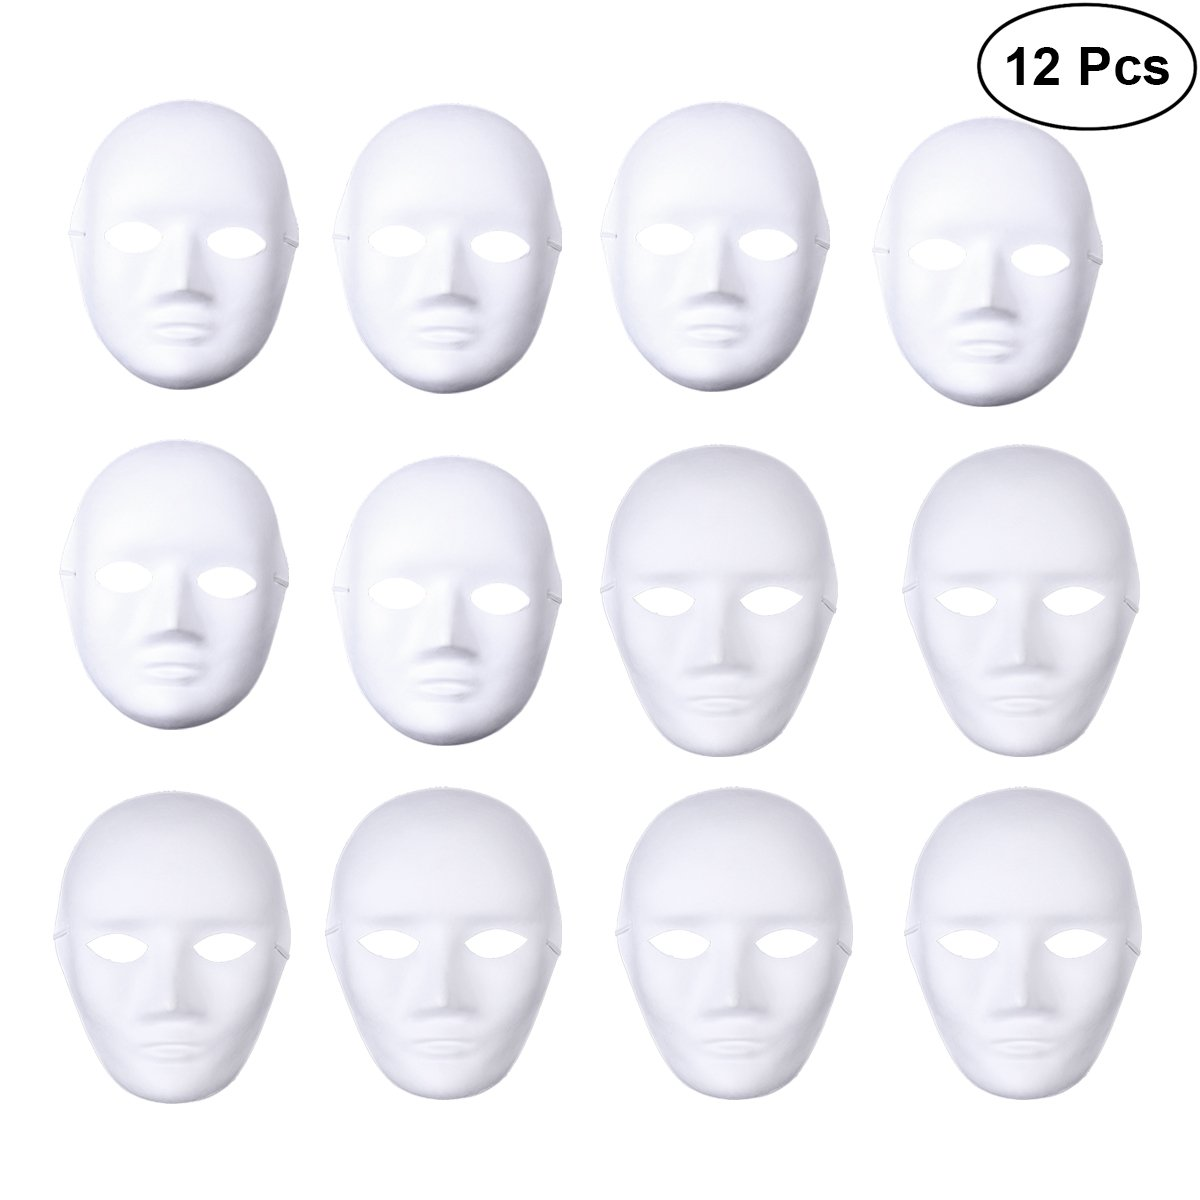 BESTOYARD 12pcs Full Face Mask Halloween Mask White DIY Mask Dance Cosplay Masquerade Party Mask (6pcs Male and 6pcs Female) by BESTOYARD